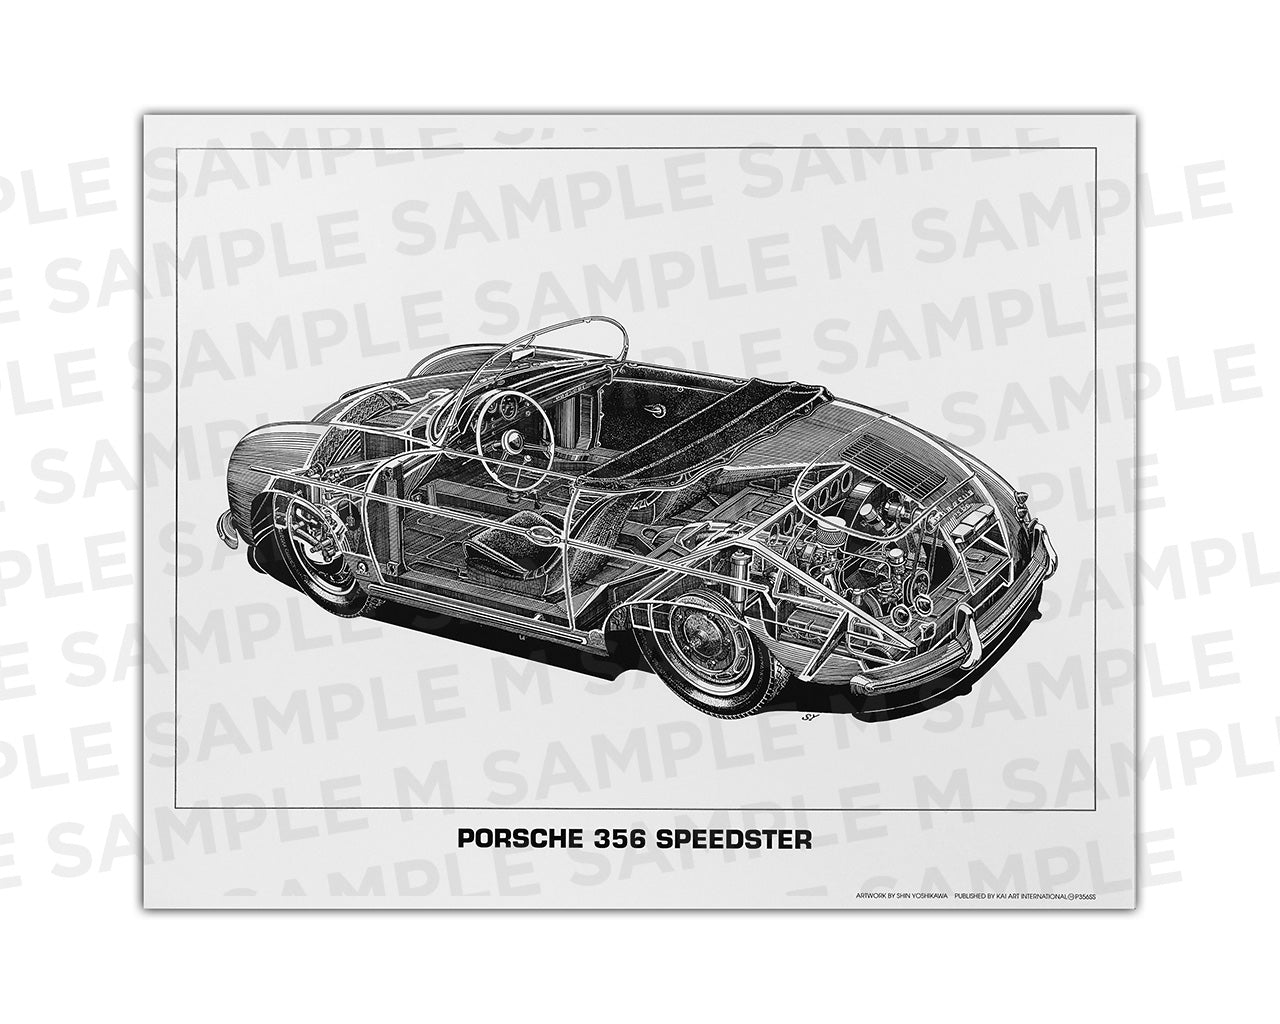 Authentic Porsche 356 Speedster cutaway drawing print by renowned automotive artist Shin Yoshikawa